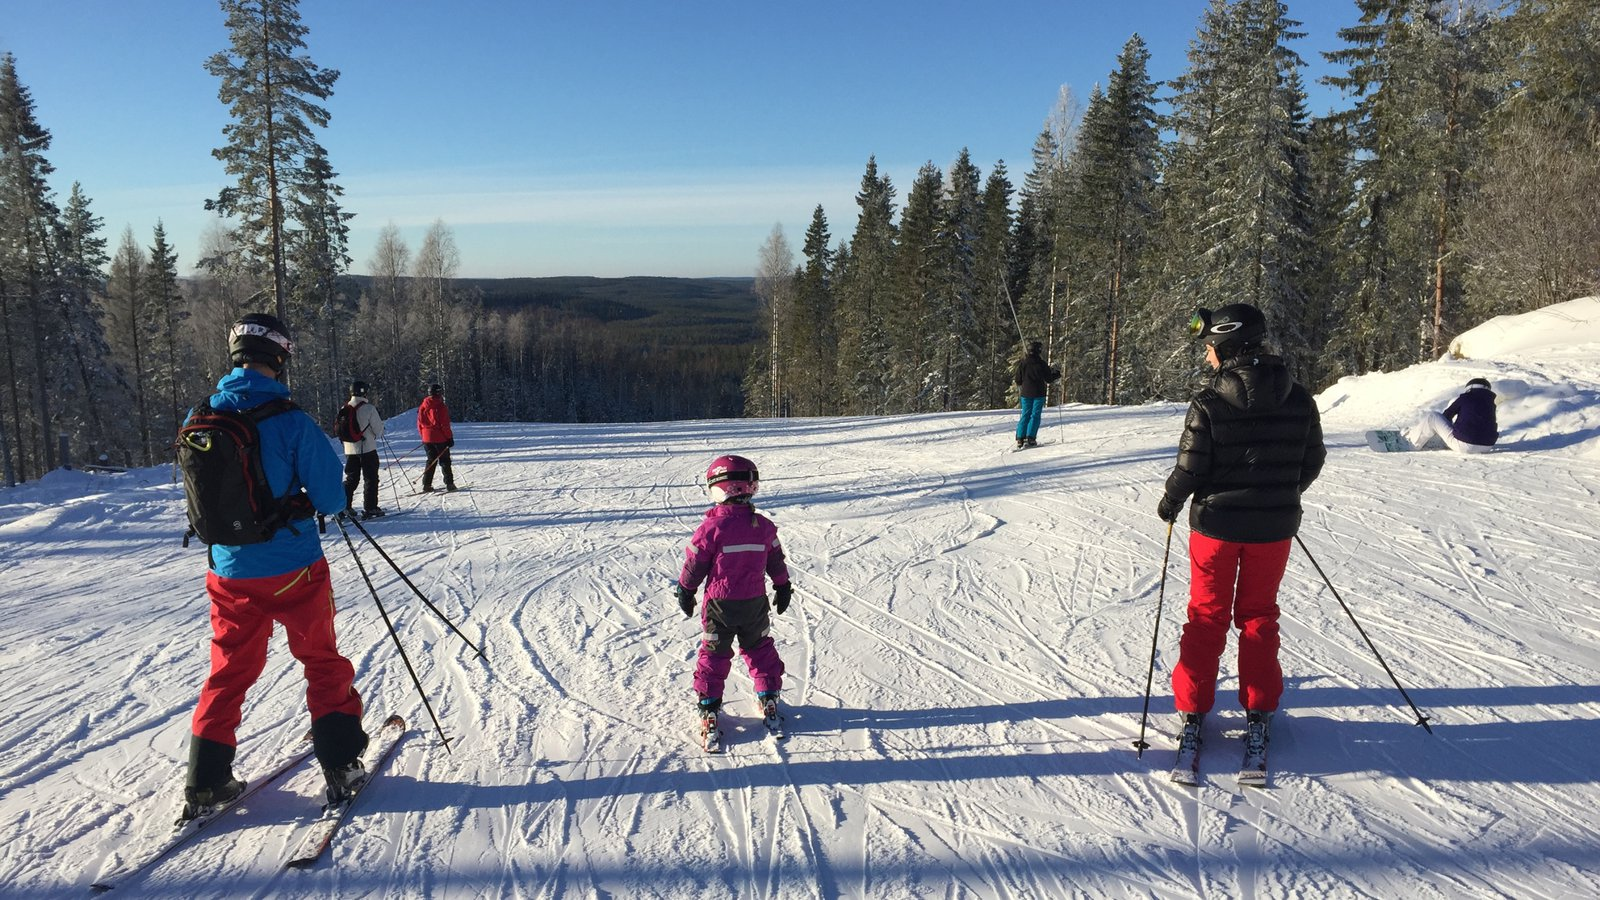 Kungsberget Ski Resort showing snow skiing, forest scenes and snow